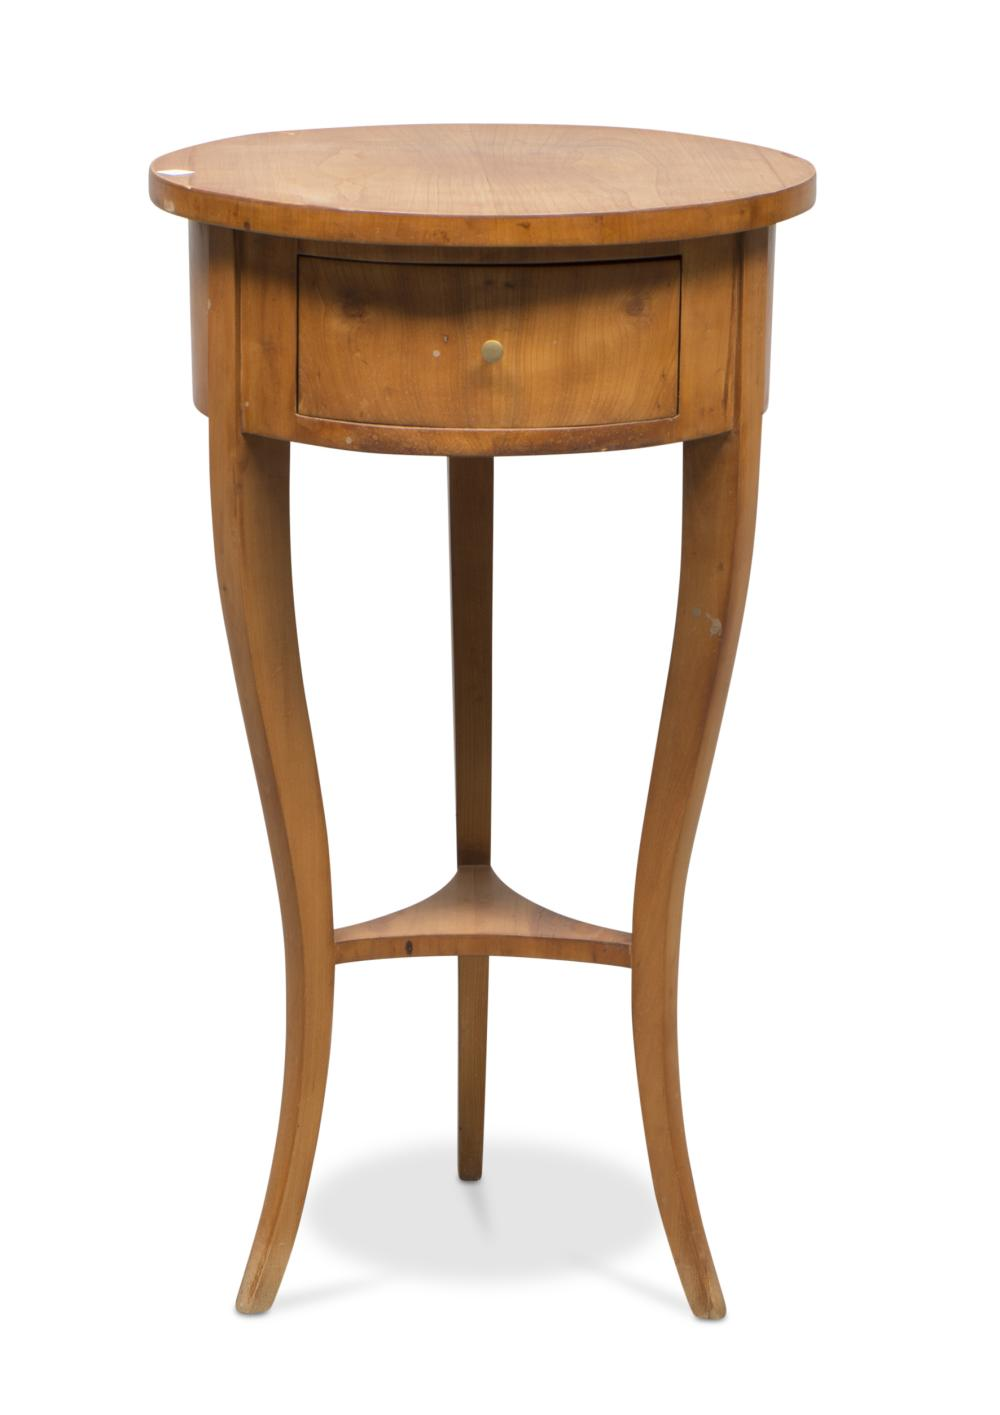 SMALL TABLE IN CHERRY TREE, FIRST HALF OF THE 19TH CENTURY